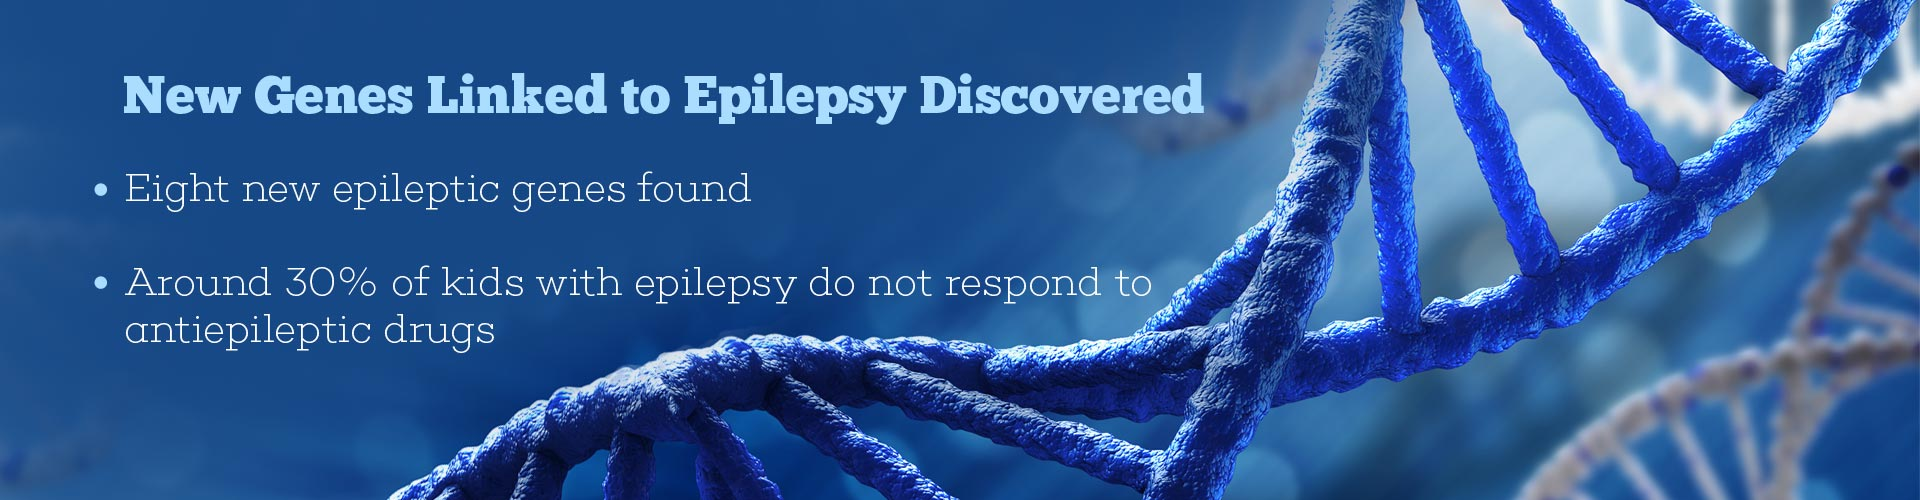 New genes linked to epilepsy discovered